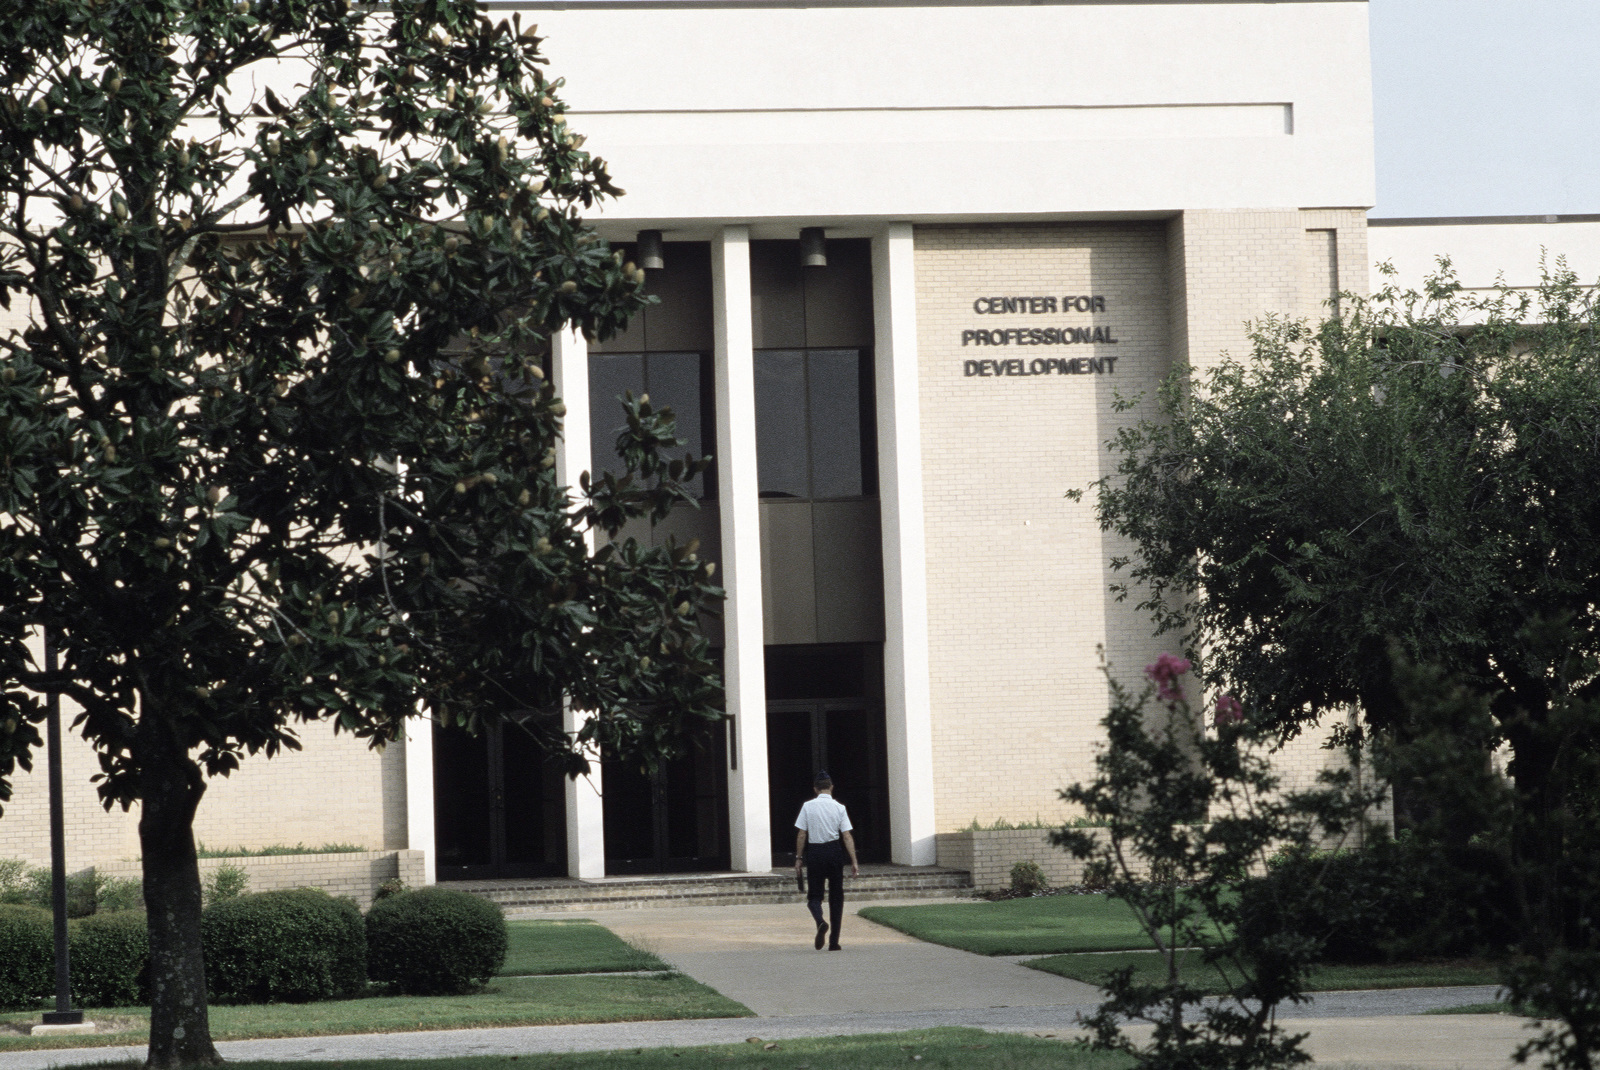 An exterior view of the Center for Professional Development, Air University.  The university offers formal training in many areas of military studies to officers and senior non-commissioned officers in the Air Force